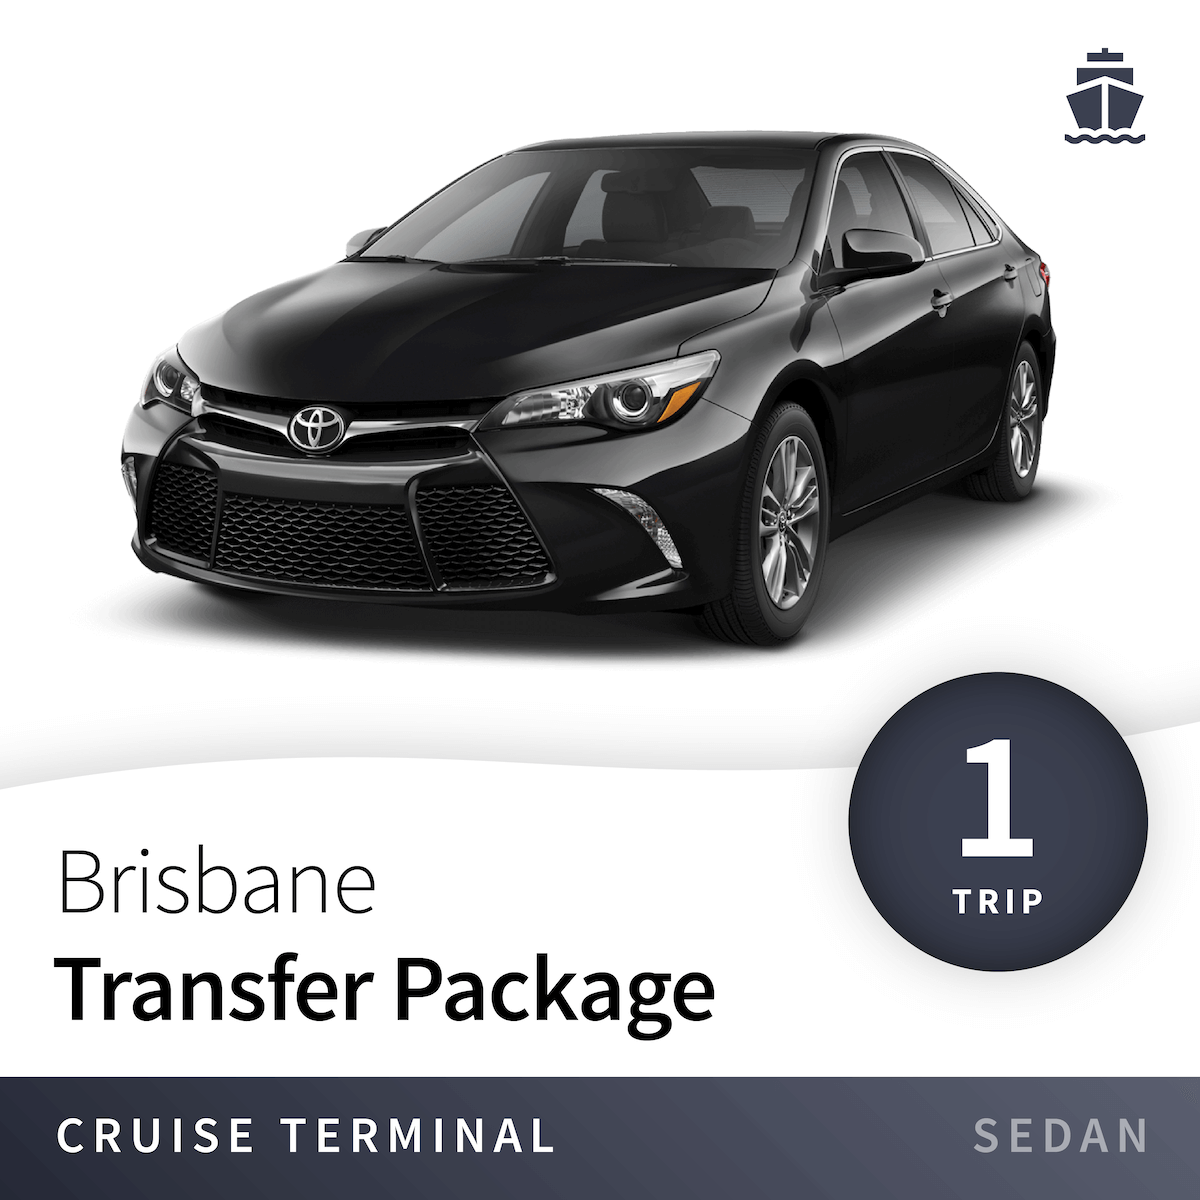 Brisbane Cruise Terminal Transfer Package - Sedan (1 Trip) 20